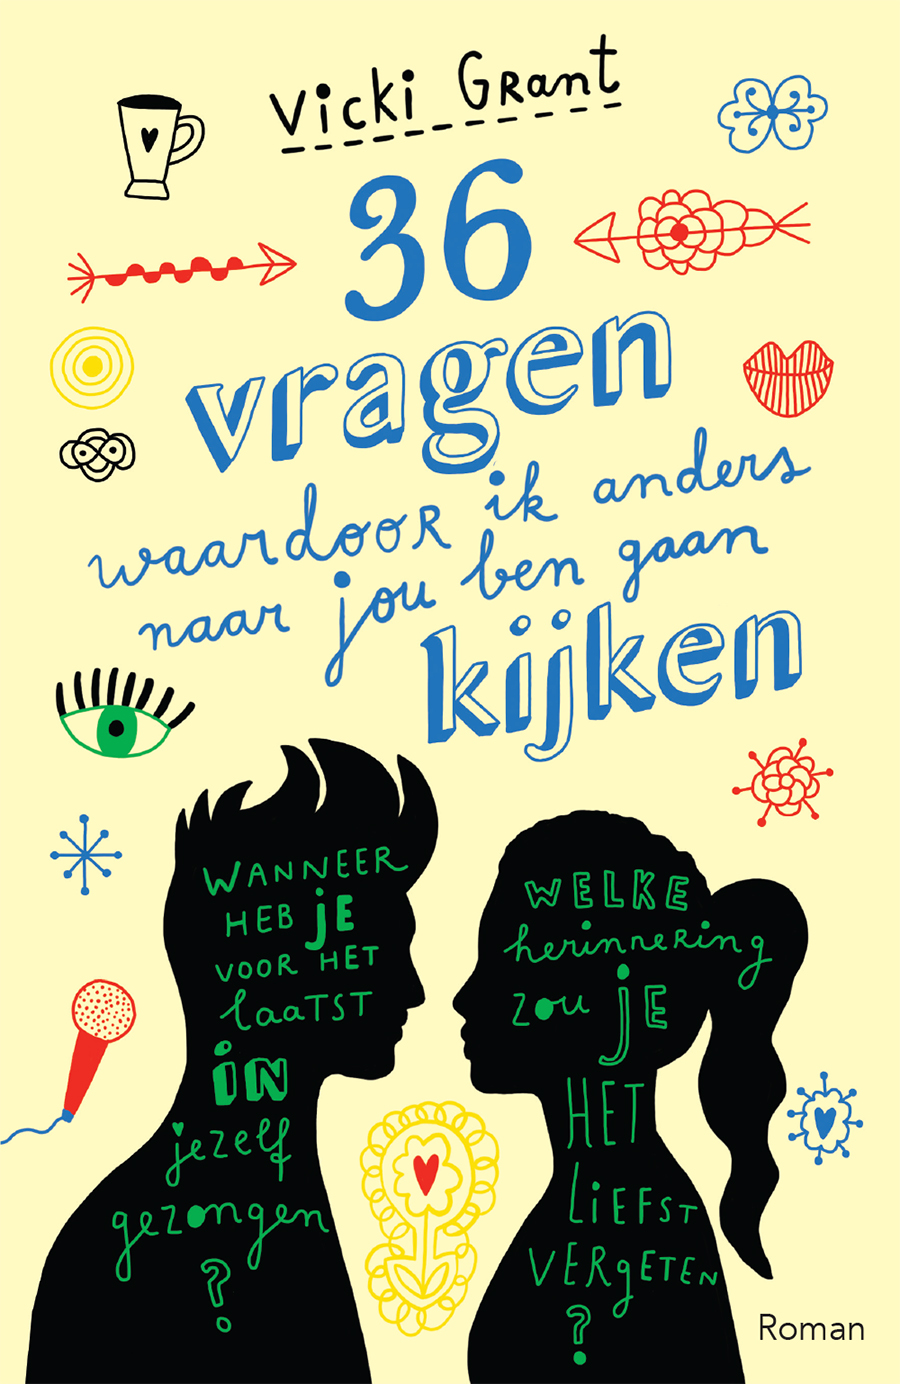 marenthe illustration and design book cover 36 vragen by Vicki Grant.jpg